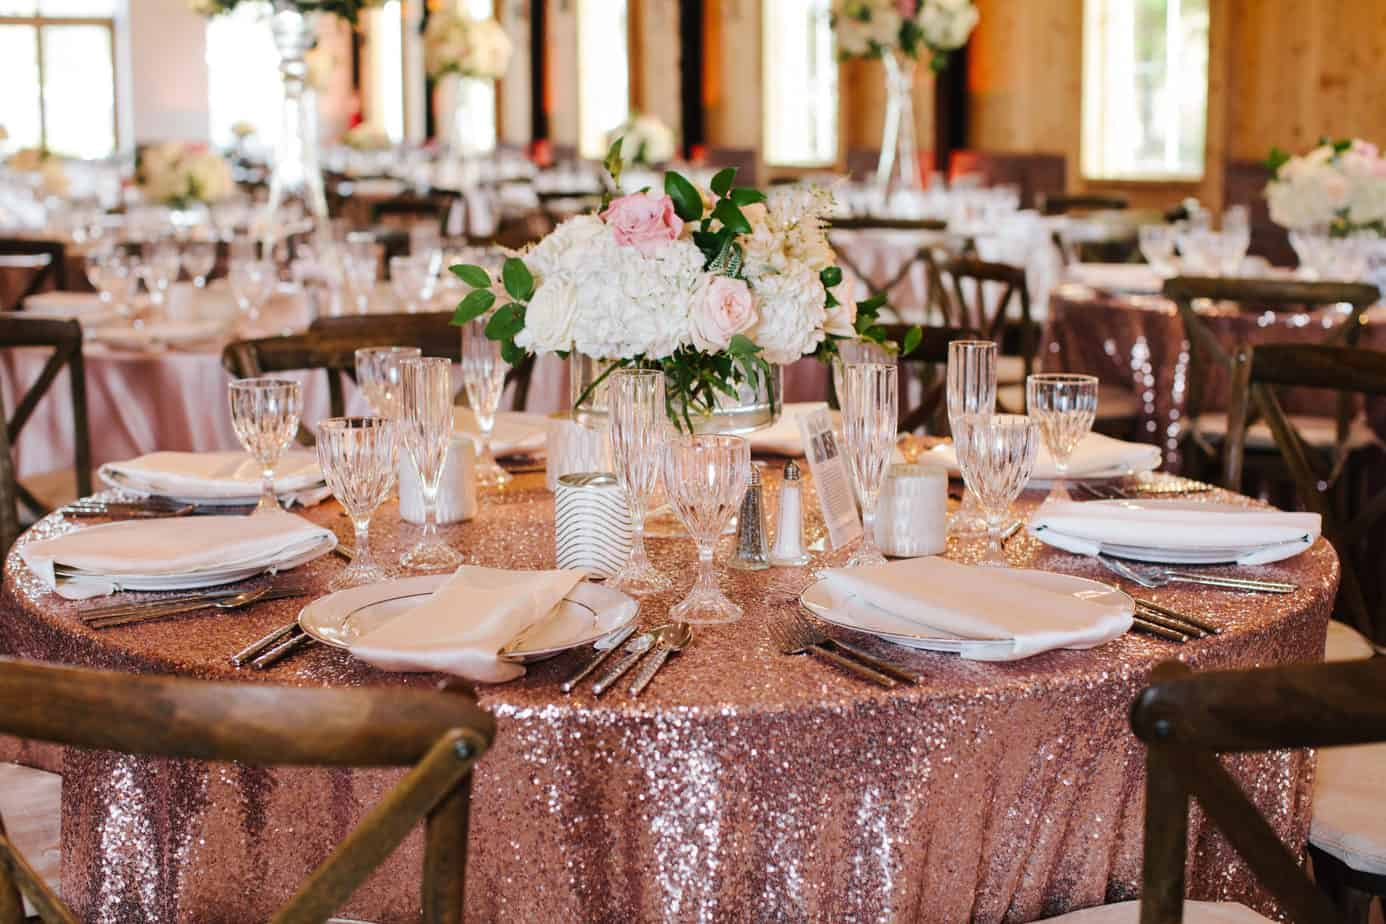 Find The Perfect Setting For Your Wedding: Cloud 9